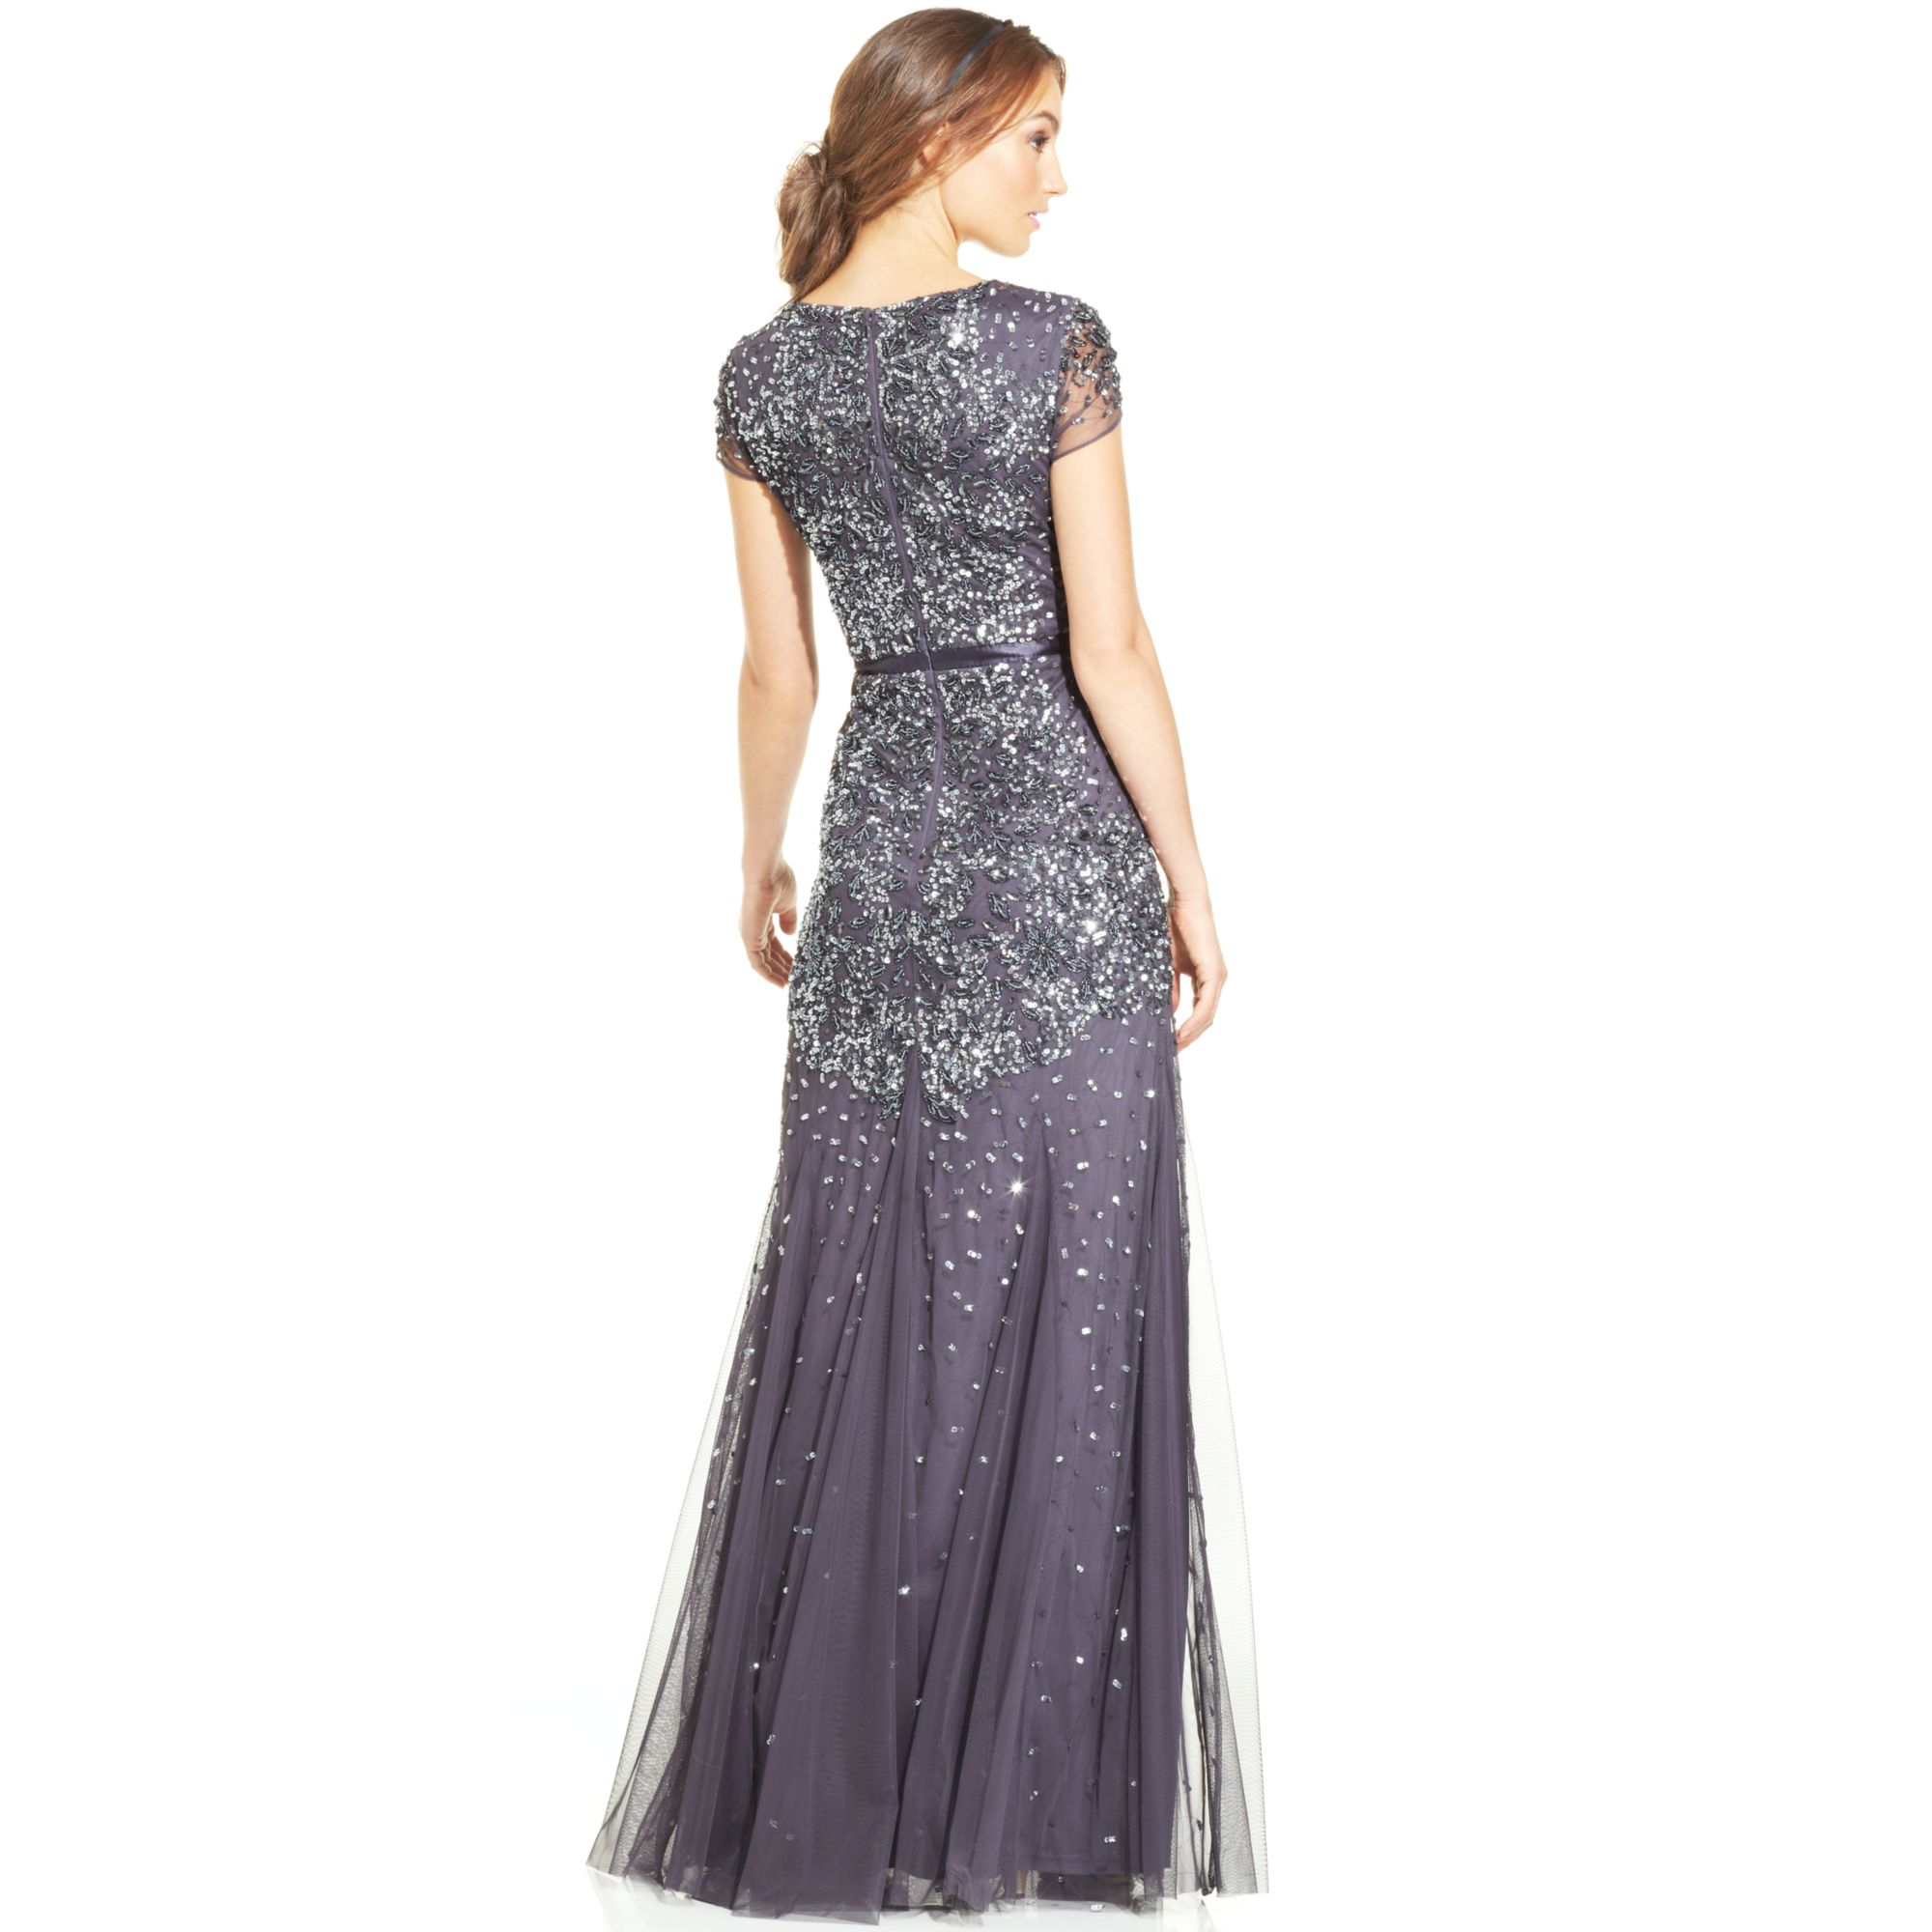 Adrianna Papell Cap-sleeve Embellished Gown In Blue